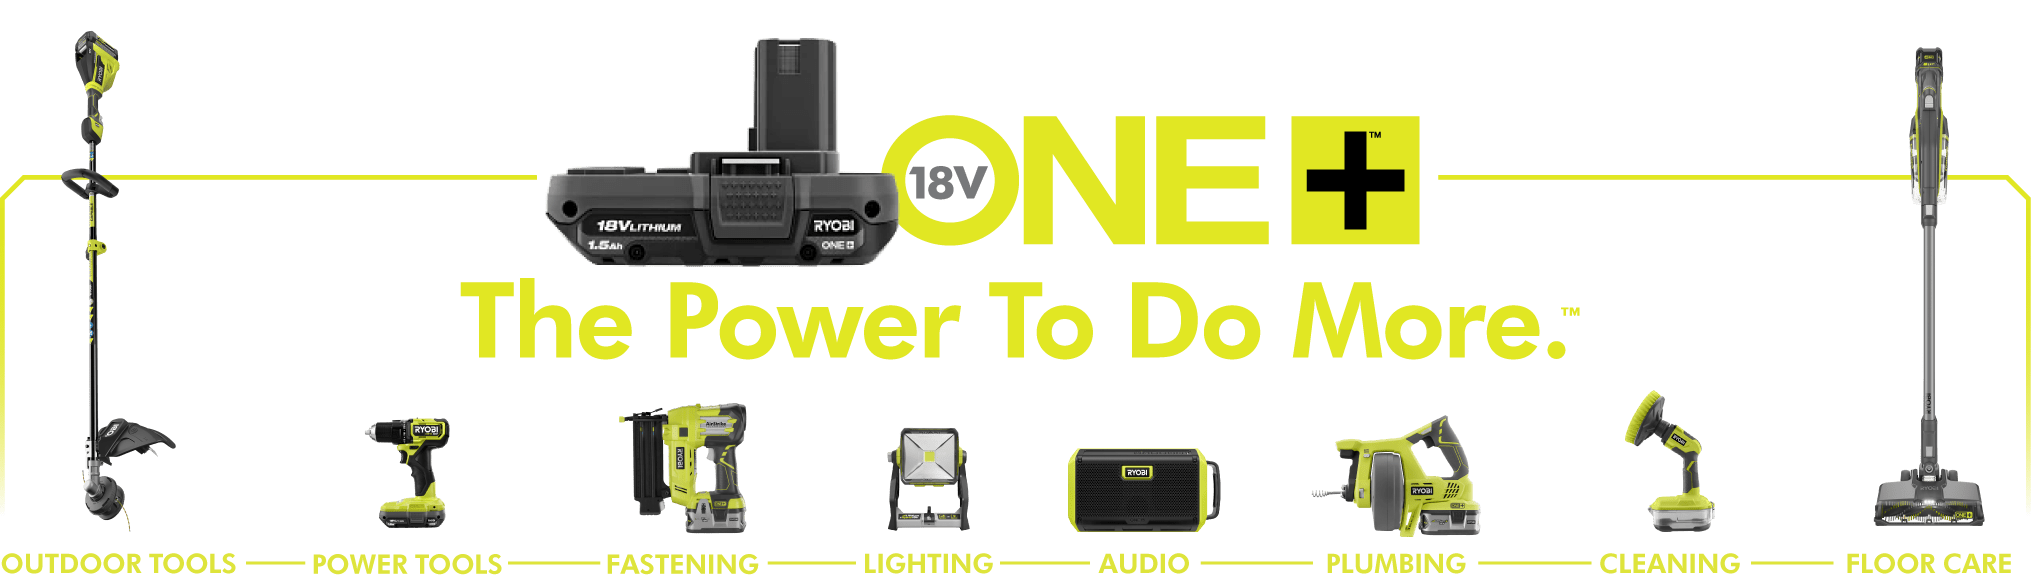 ONE+: The Power To Do More.